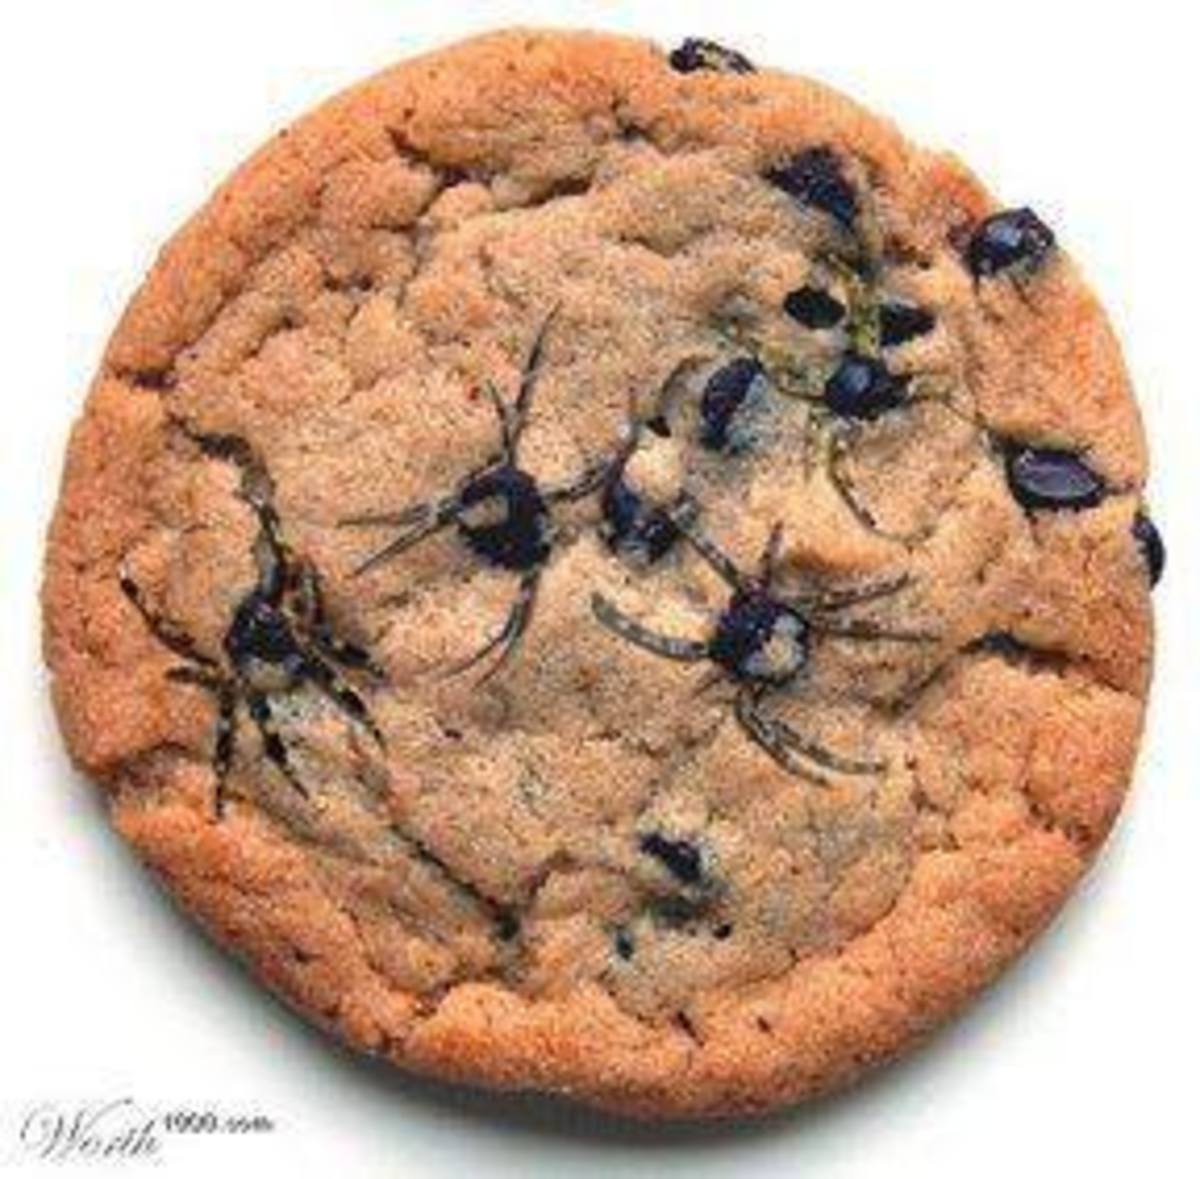 While cookies are still warm use a toothpick to drag out the spiders legs from the melted chocolate chips. Guaranteed to scare a few kids with these cookies!